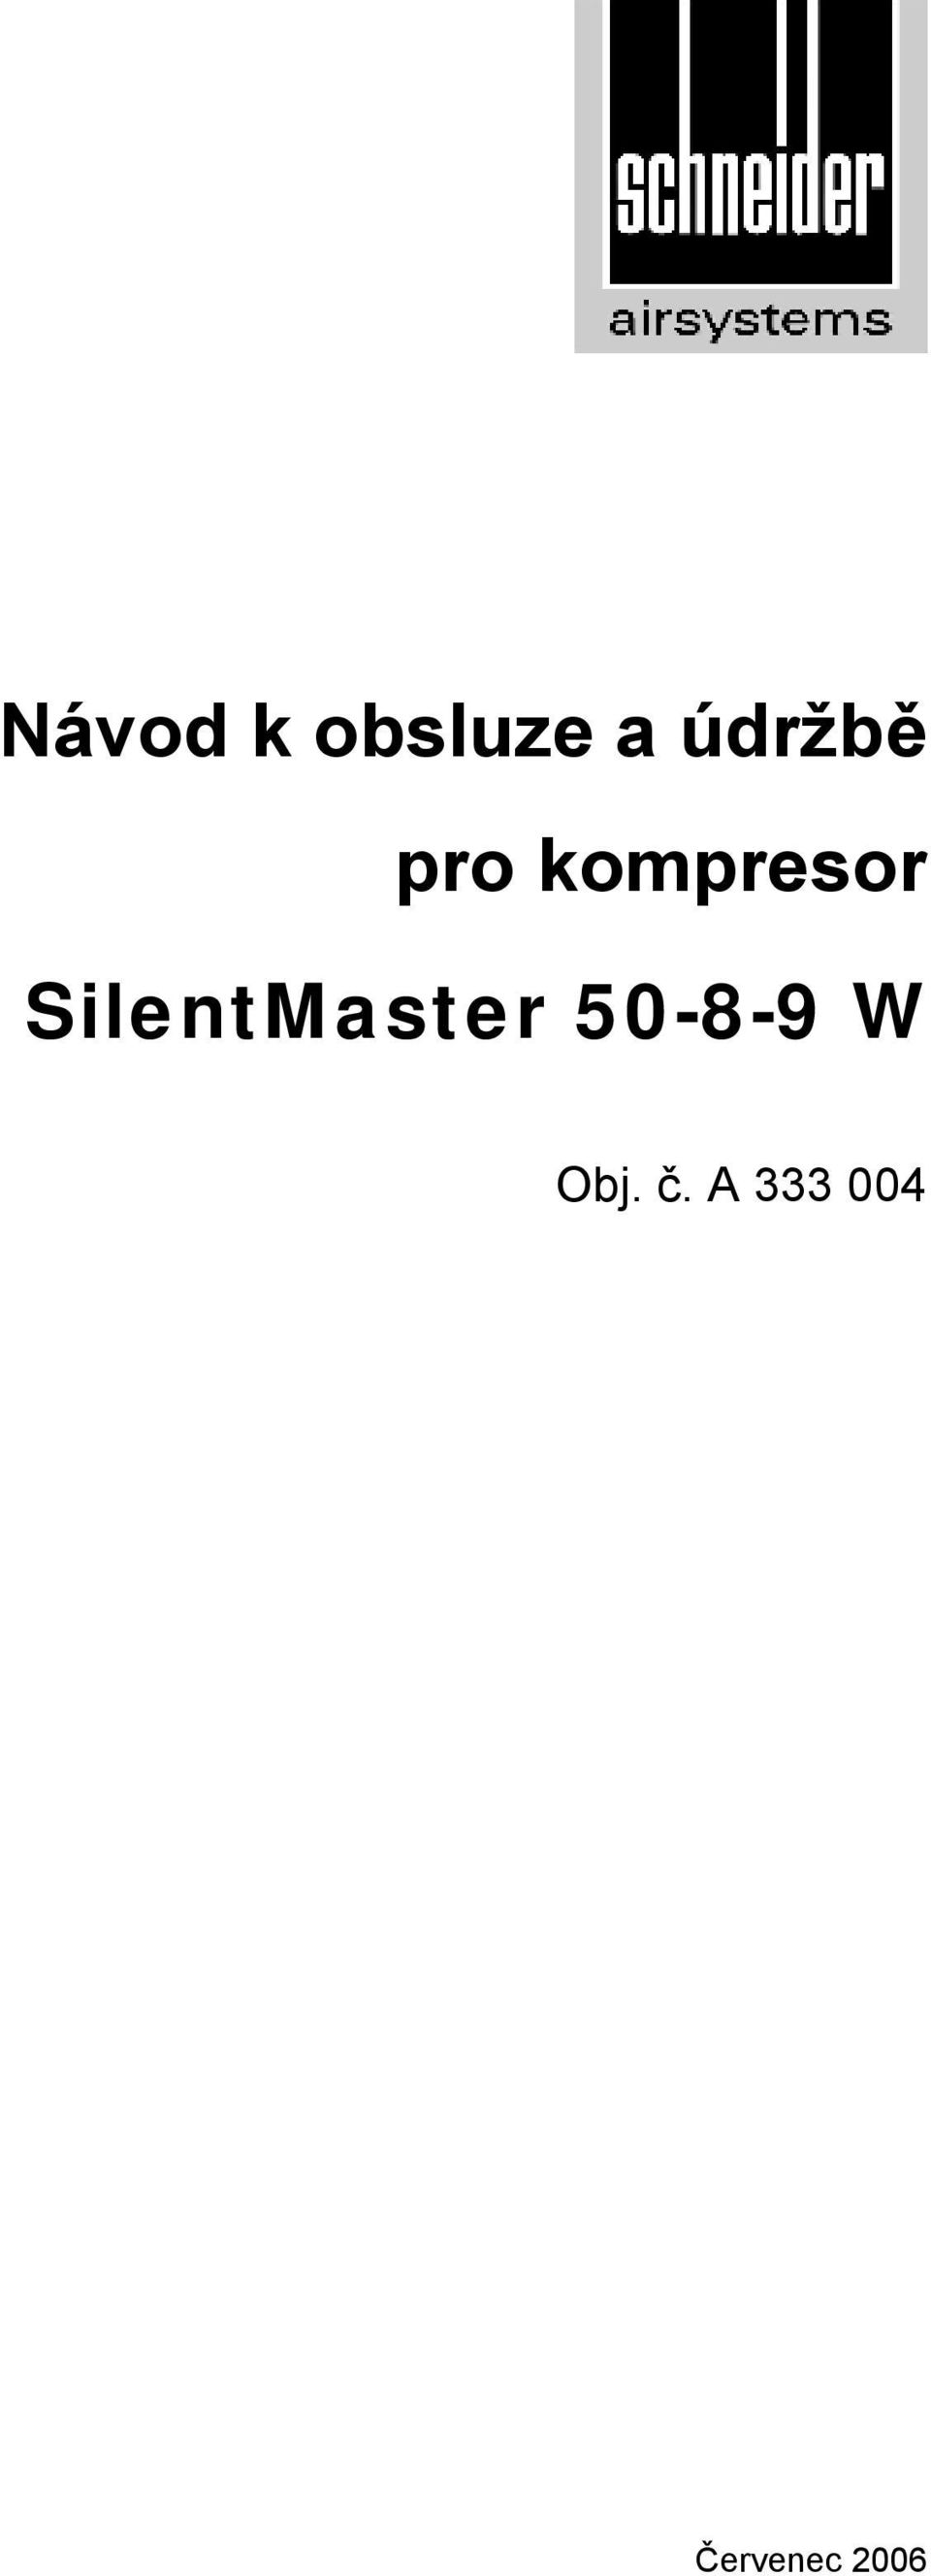 SilentMaster 50-8-9 W